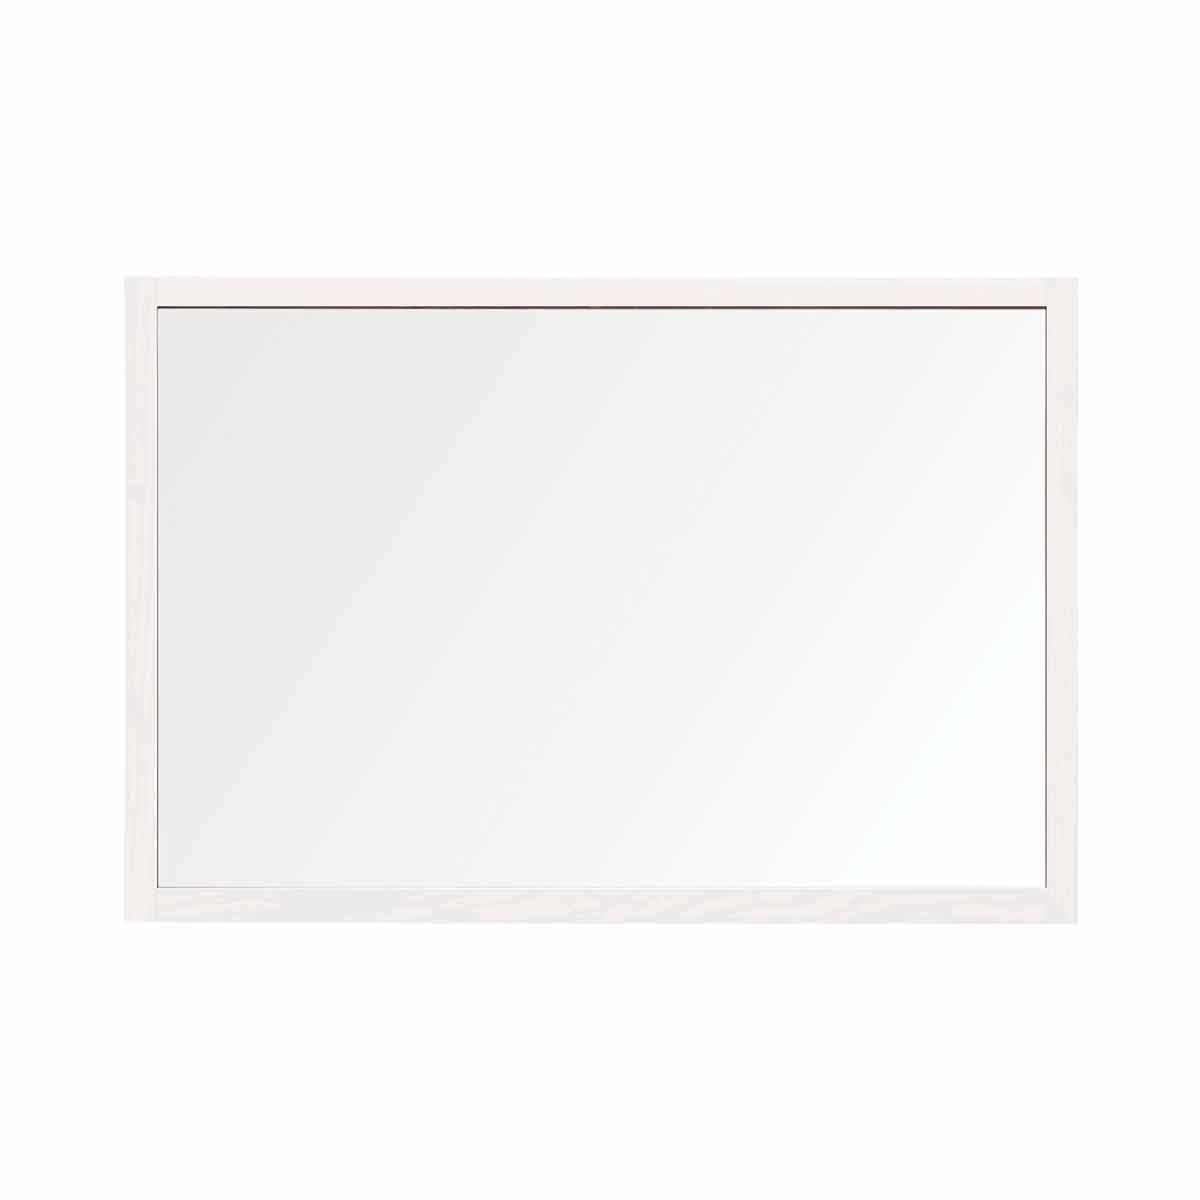 Bi-Office Protector Desktop Glass Board with MDF Frame and Clamps 90x60 cm White